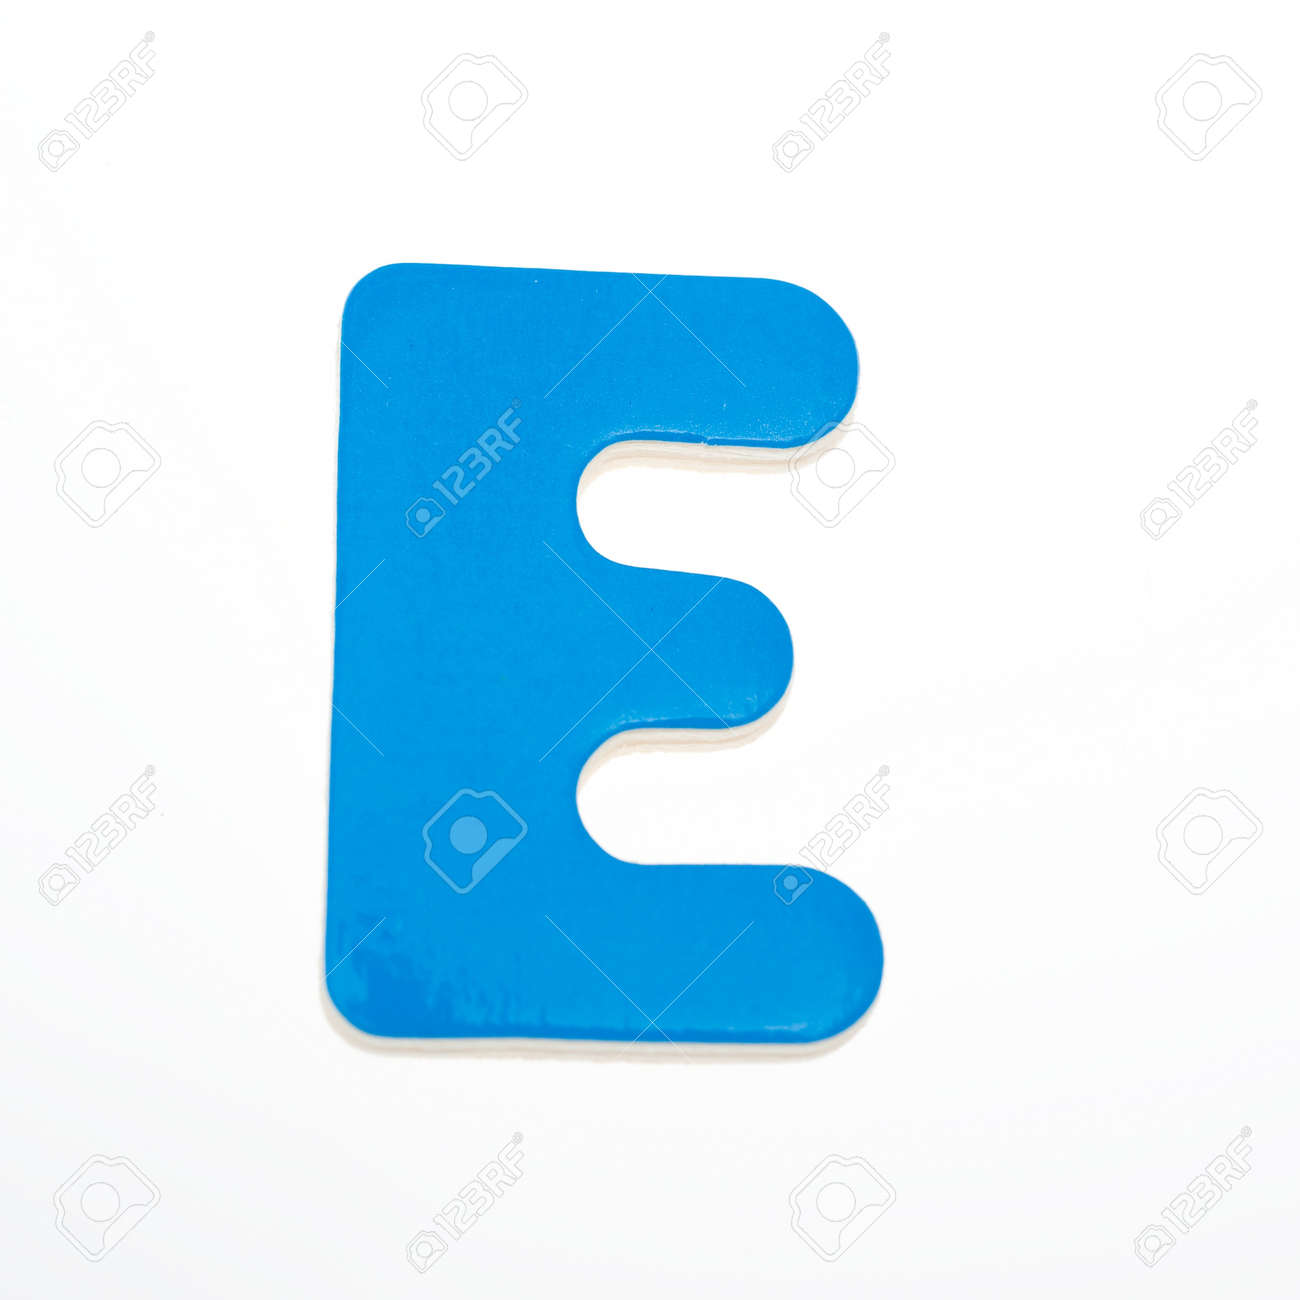 wooden toy letter E isolated on white background. Stock Photo - 14588238